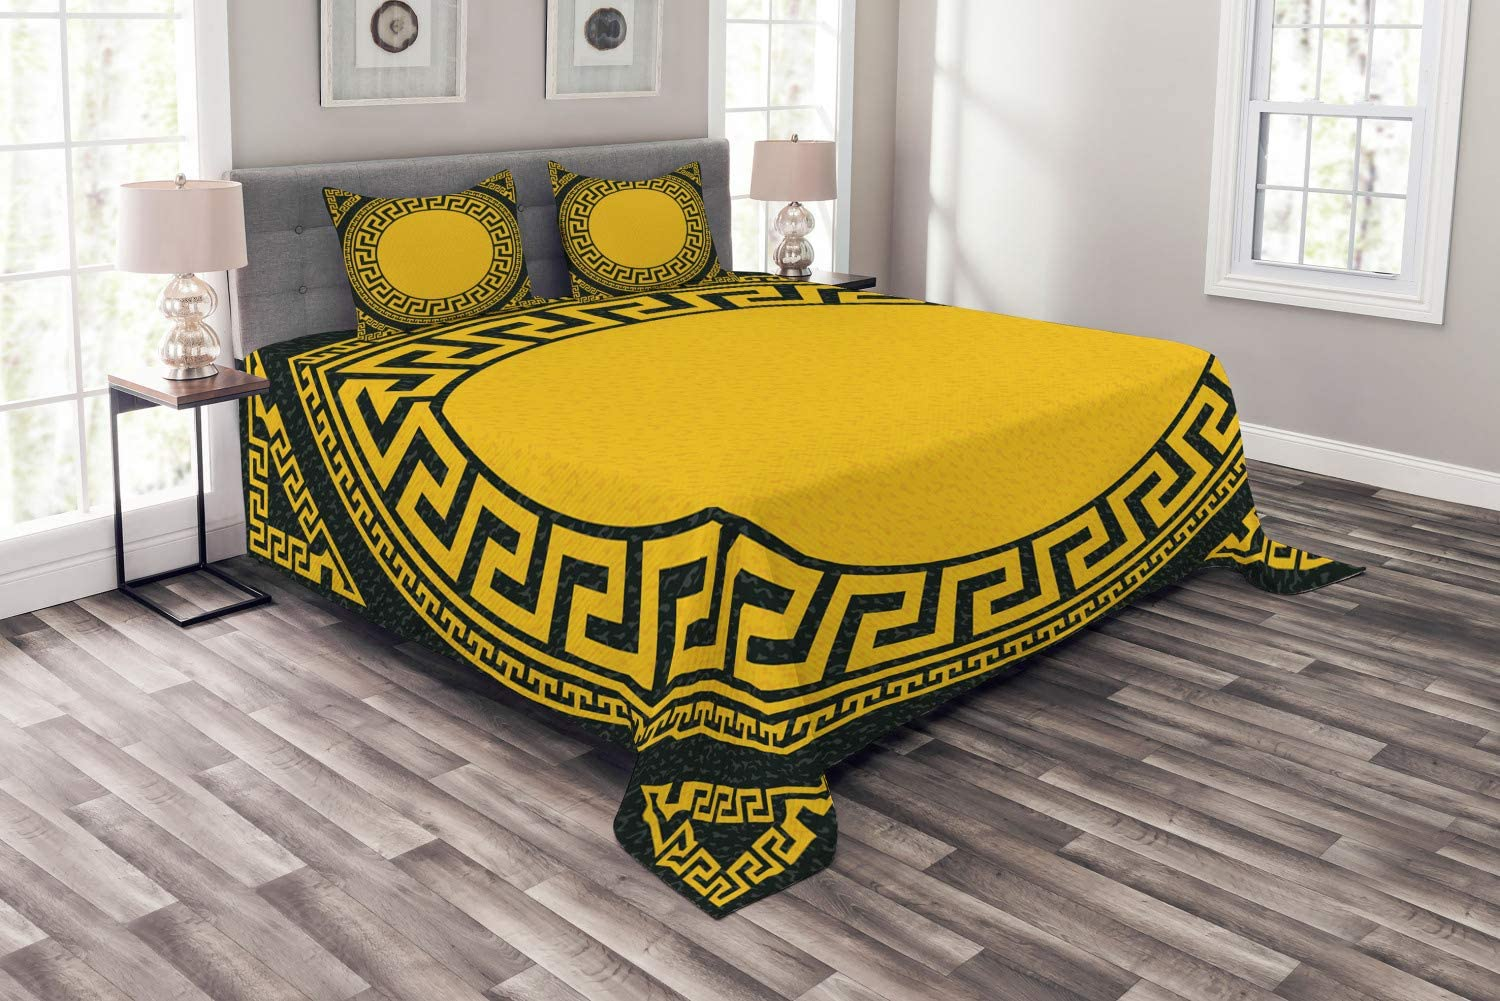 Ambesonne Greek Key Bedspread, Sun Inspired Big Circle with Antique Fret and Triangular Ornaments, Decorative Quilted 3 Piece Coverlet Set with 2 Pillow Shams, King Size, Grey Charcoal